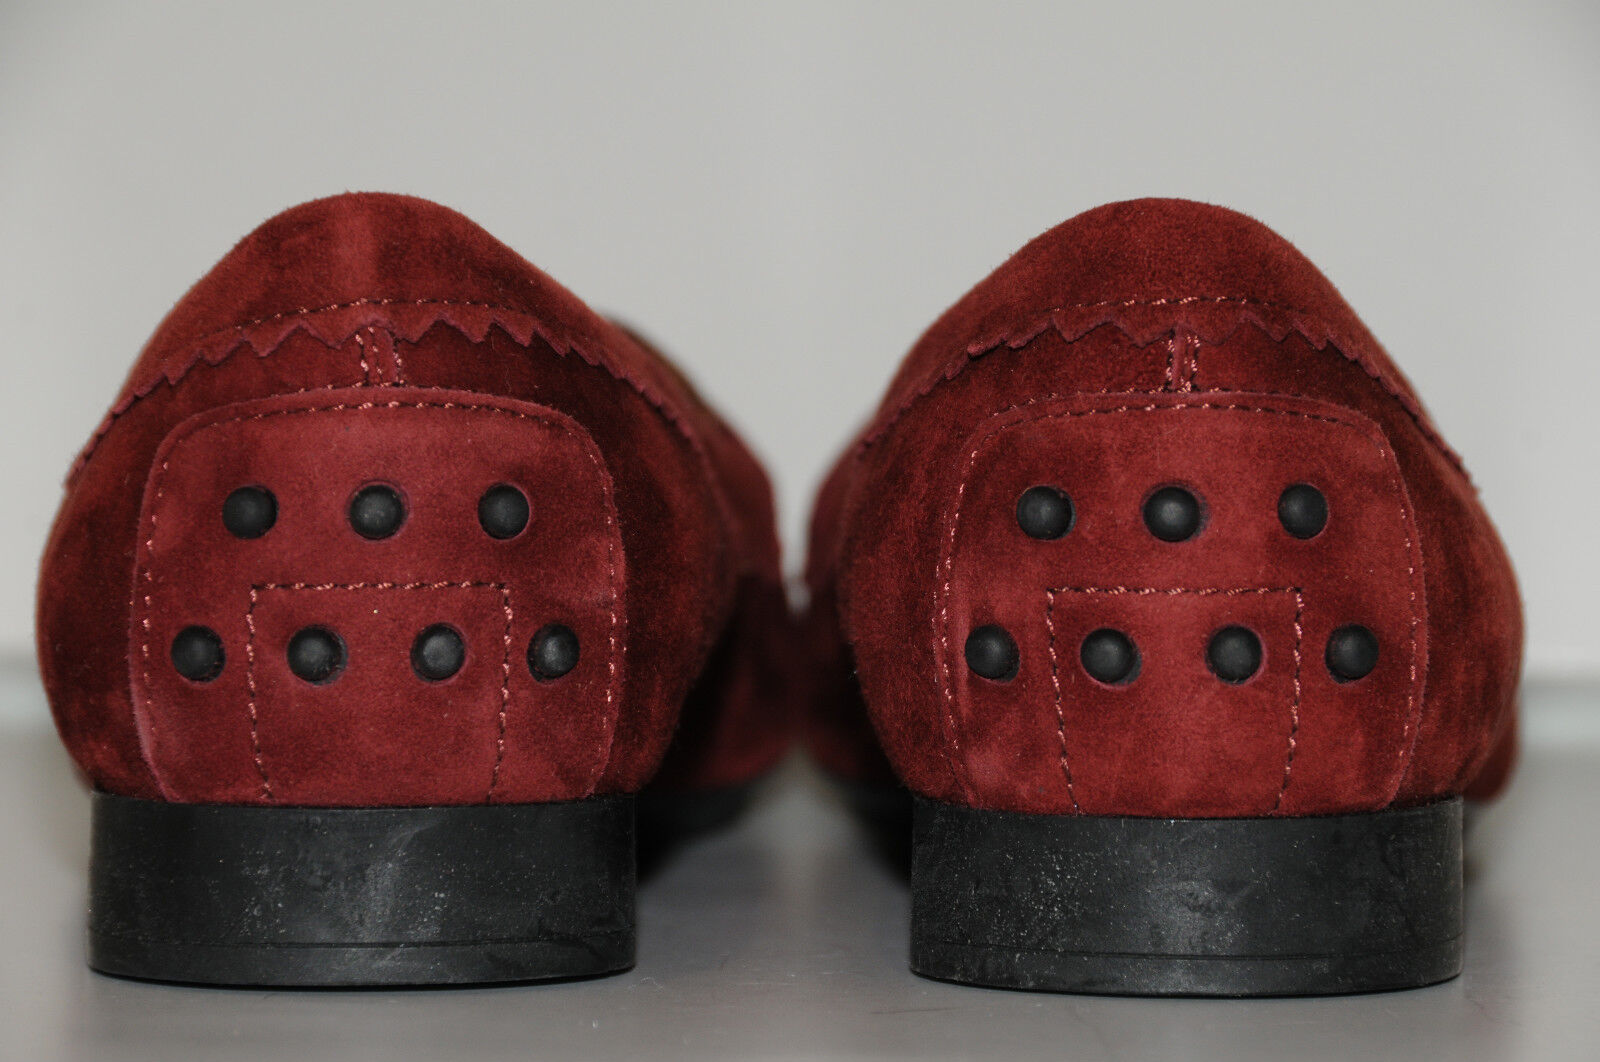 New TOD'S Flats Red  Burgundy Suede Mocassins Jewel Jewel Jewel CRYSTALS shoes Loafers 39.5 0db694